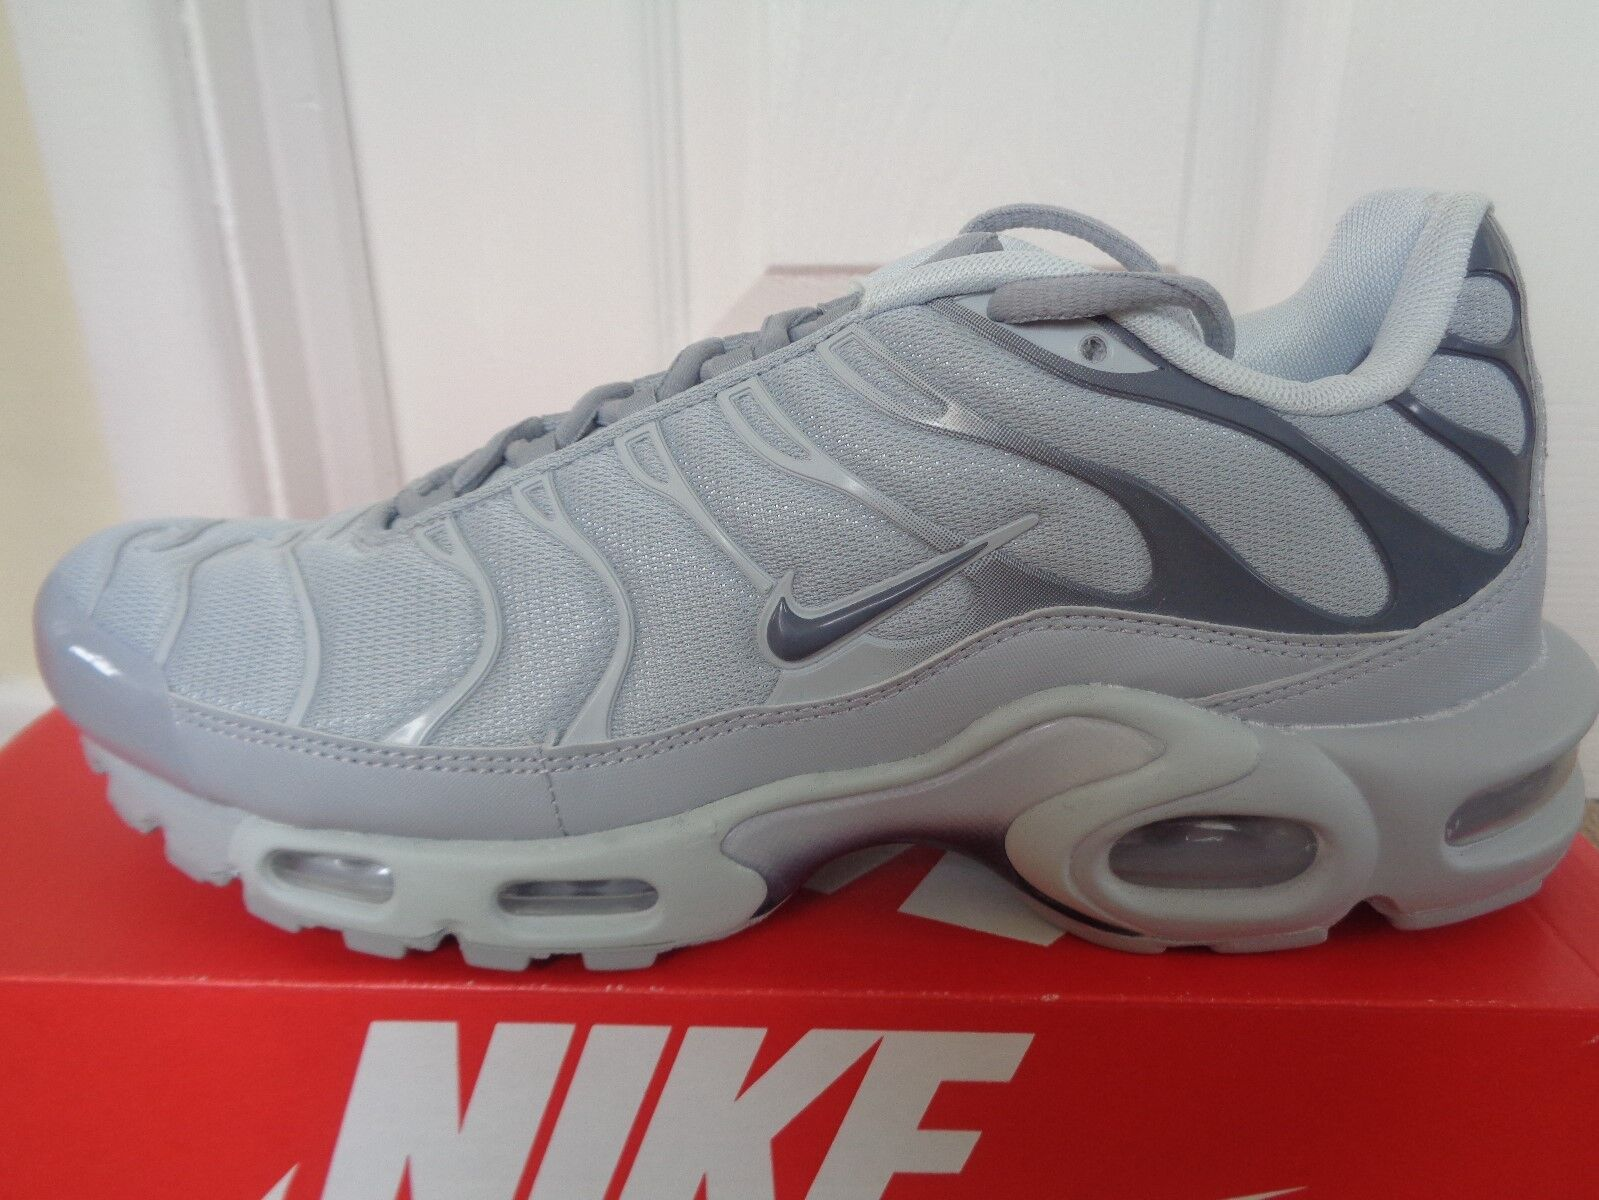 Nike Air max plus trainers sneakers shoes 852630 006 uk 7.5 eu 42 us 8.5 NEW+BOX